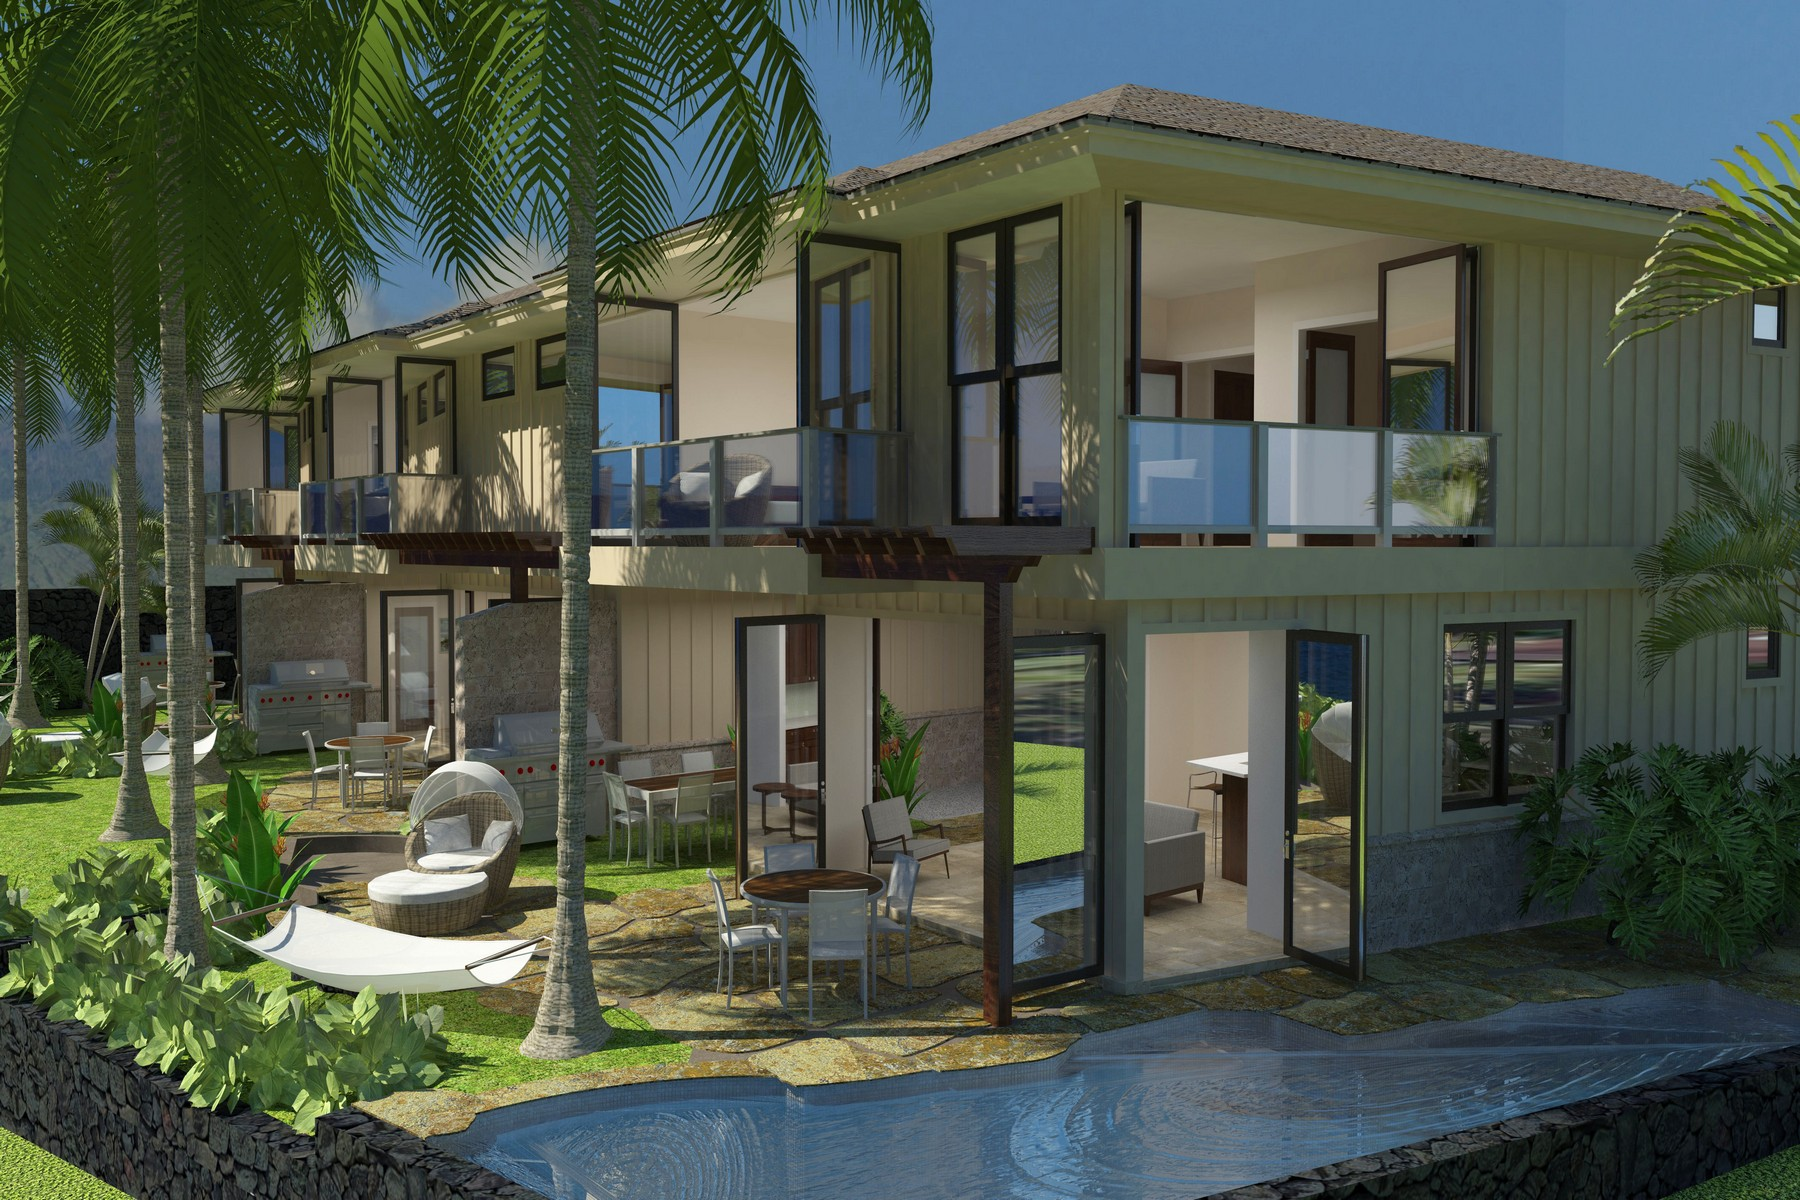 Condominio por un Venta en Maui New Construction Luxury Beachfront Condo 2192 Iliili Road, Maui Beach Place Orchid Kihei, Hawaii, 96753 Estados Unidos